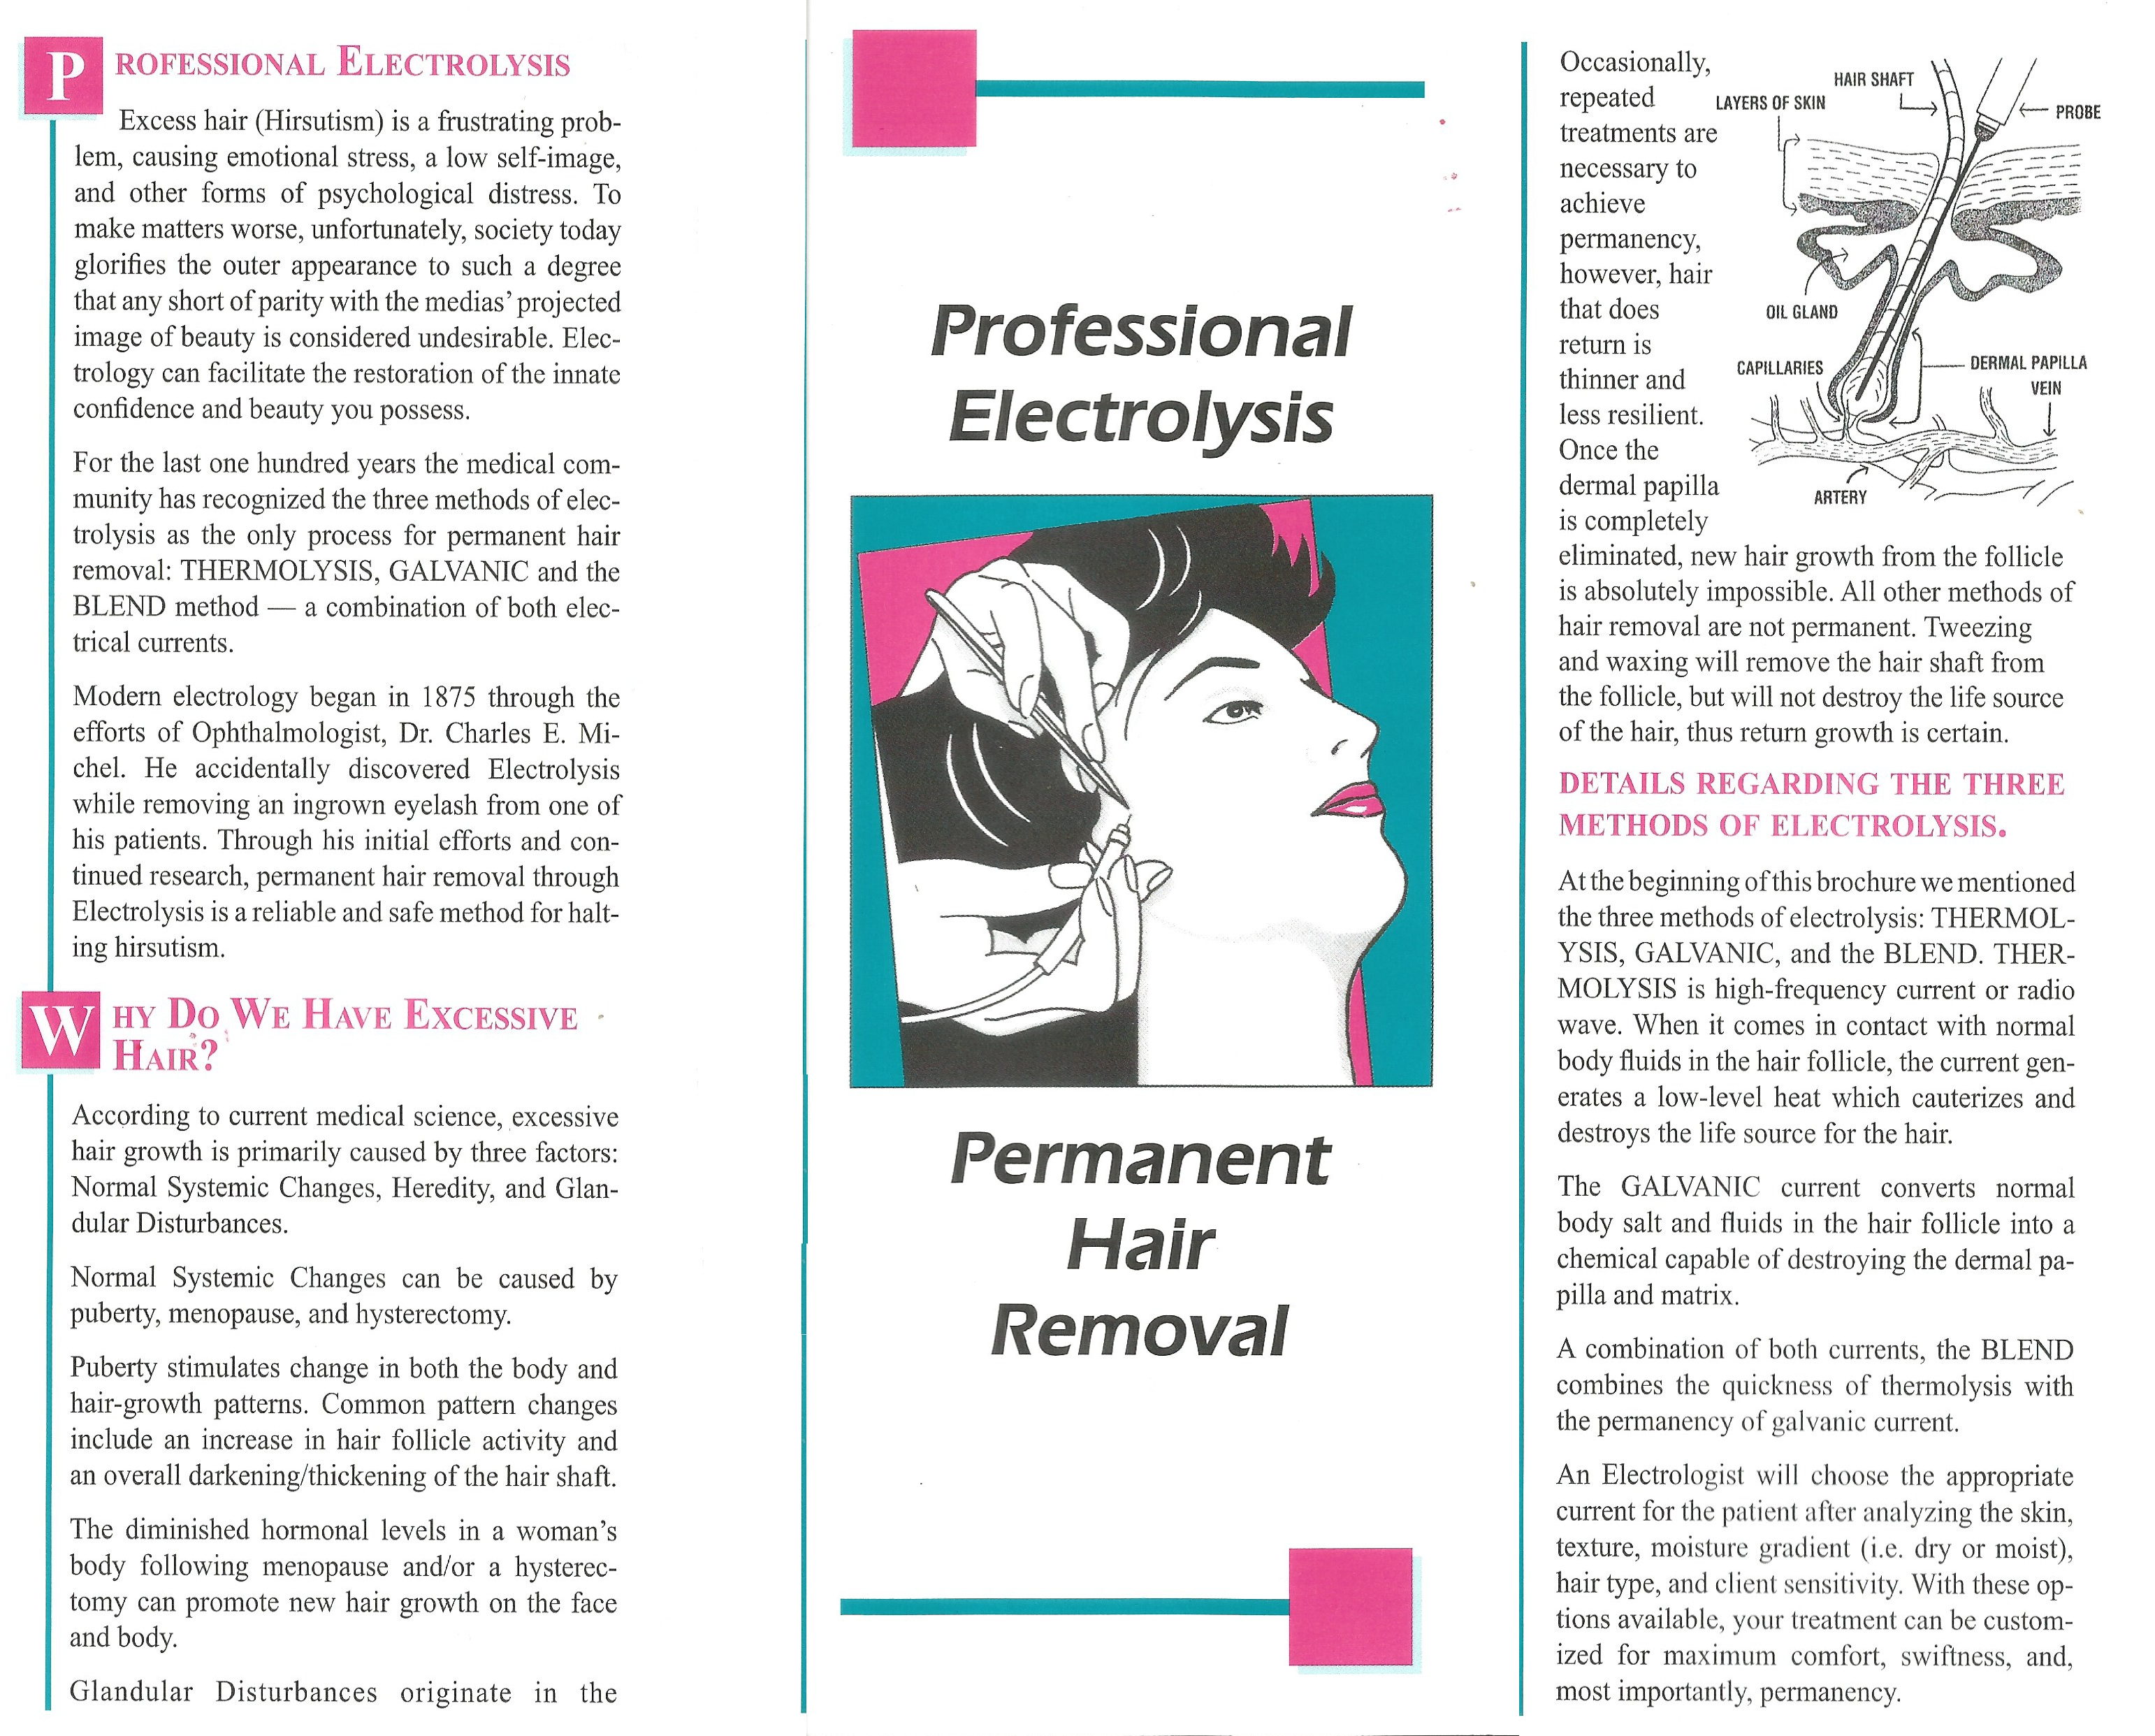 Professional Electrolysis Permanent Hair Removal Brochure